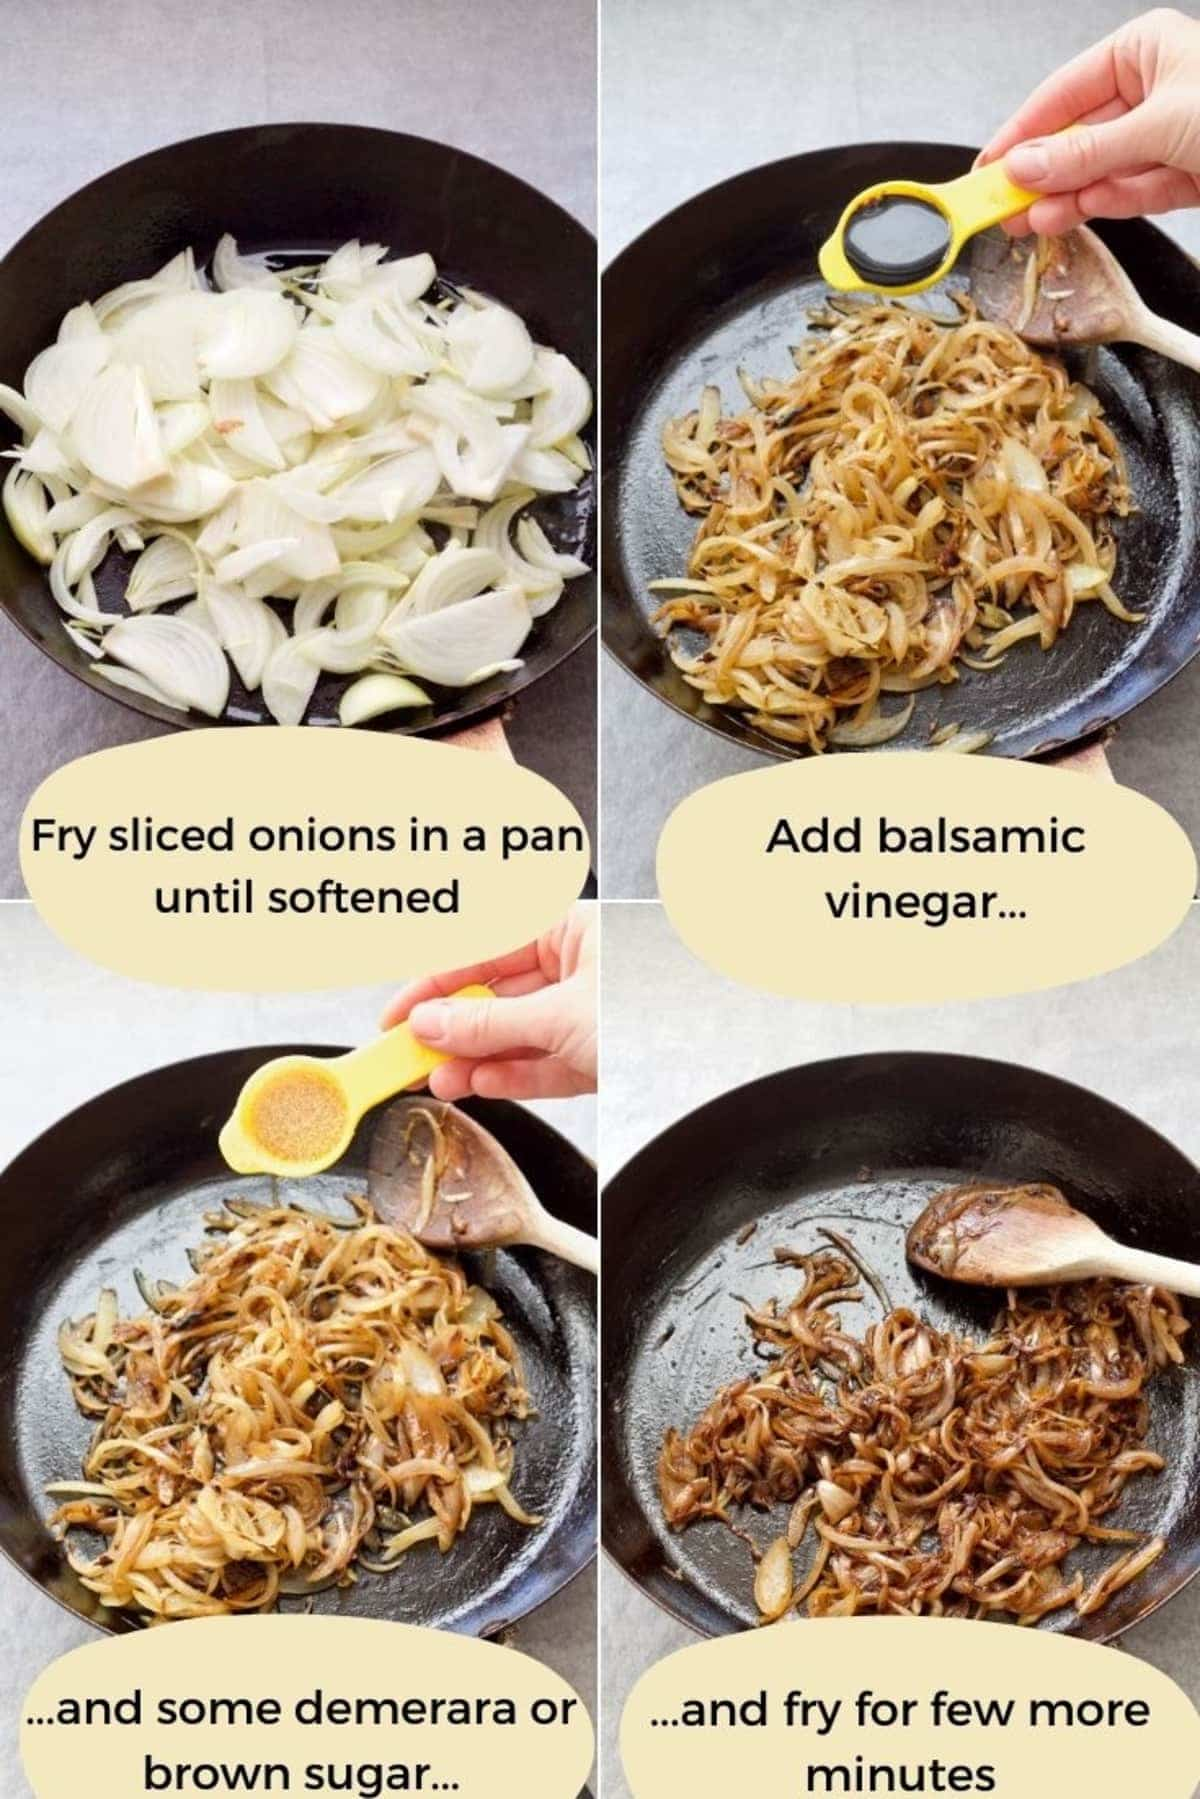 Process of making caramelised onions.